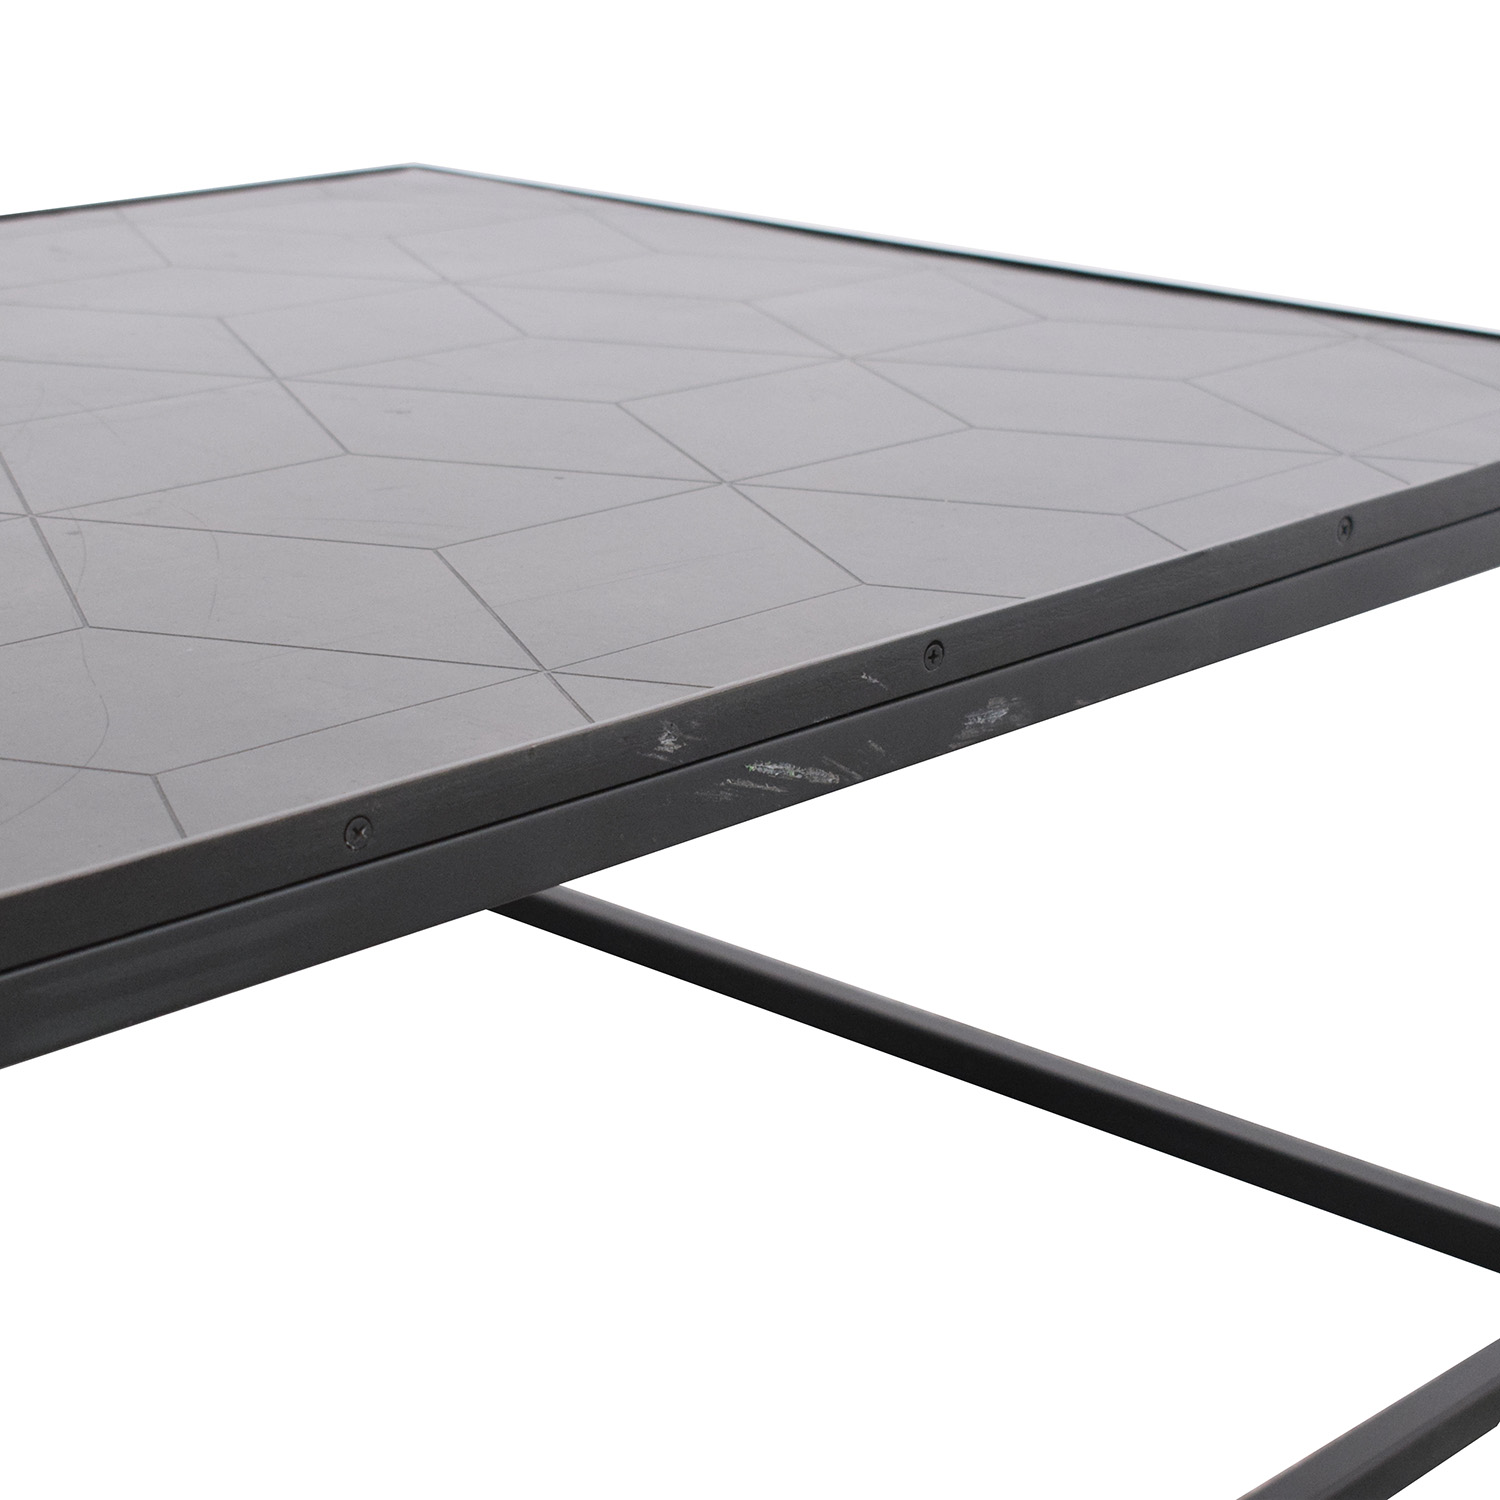 Restoration Hardware Restoration Hardware Mercer Rectangular Coffee Table dimensions